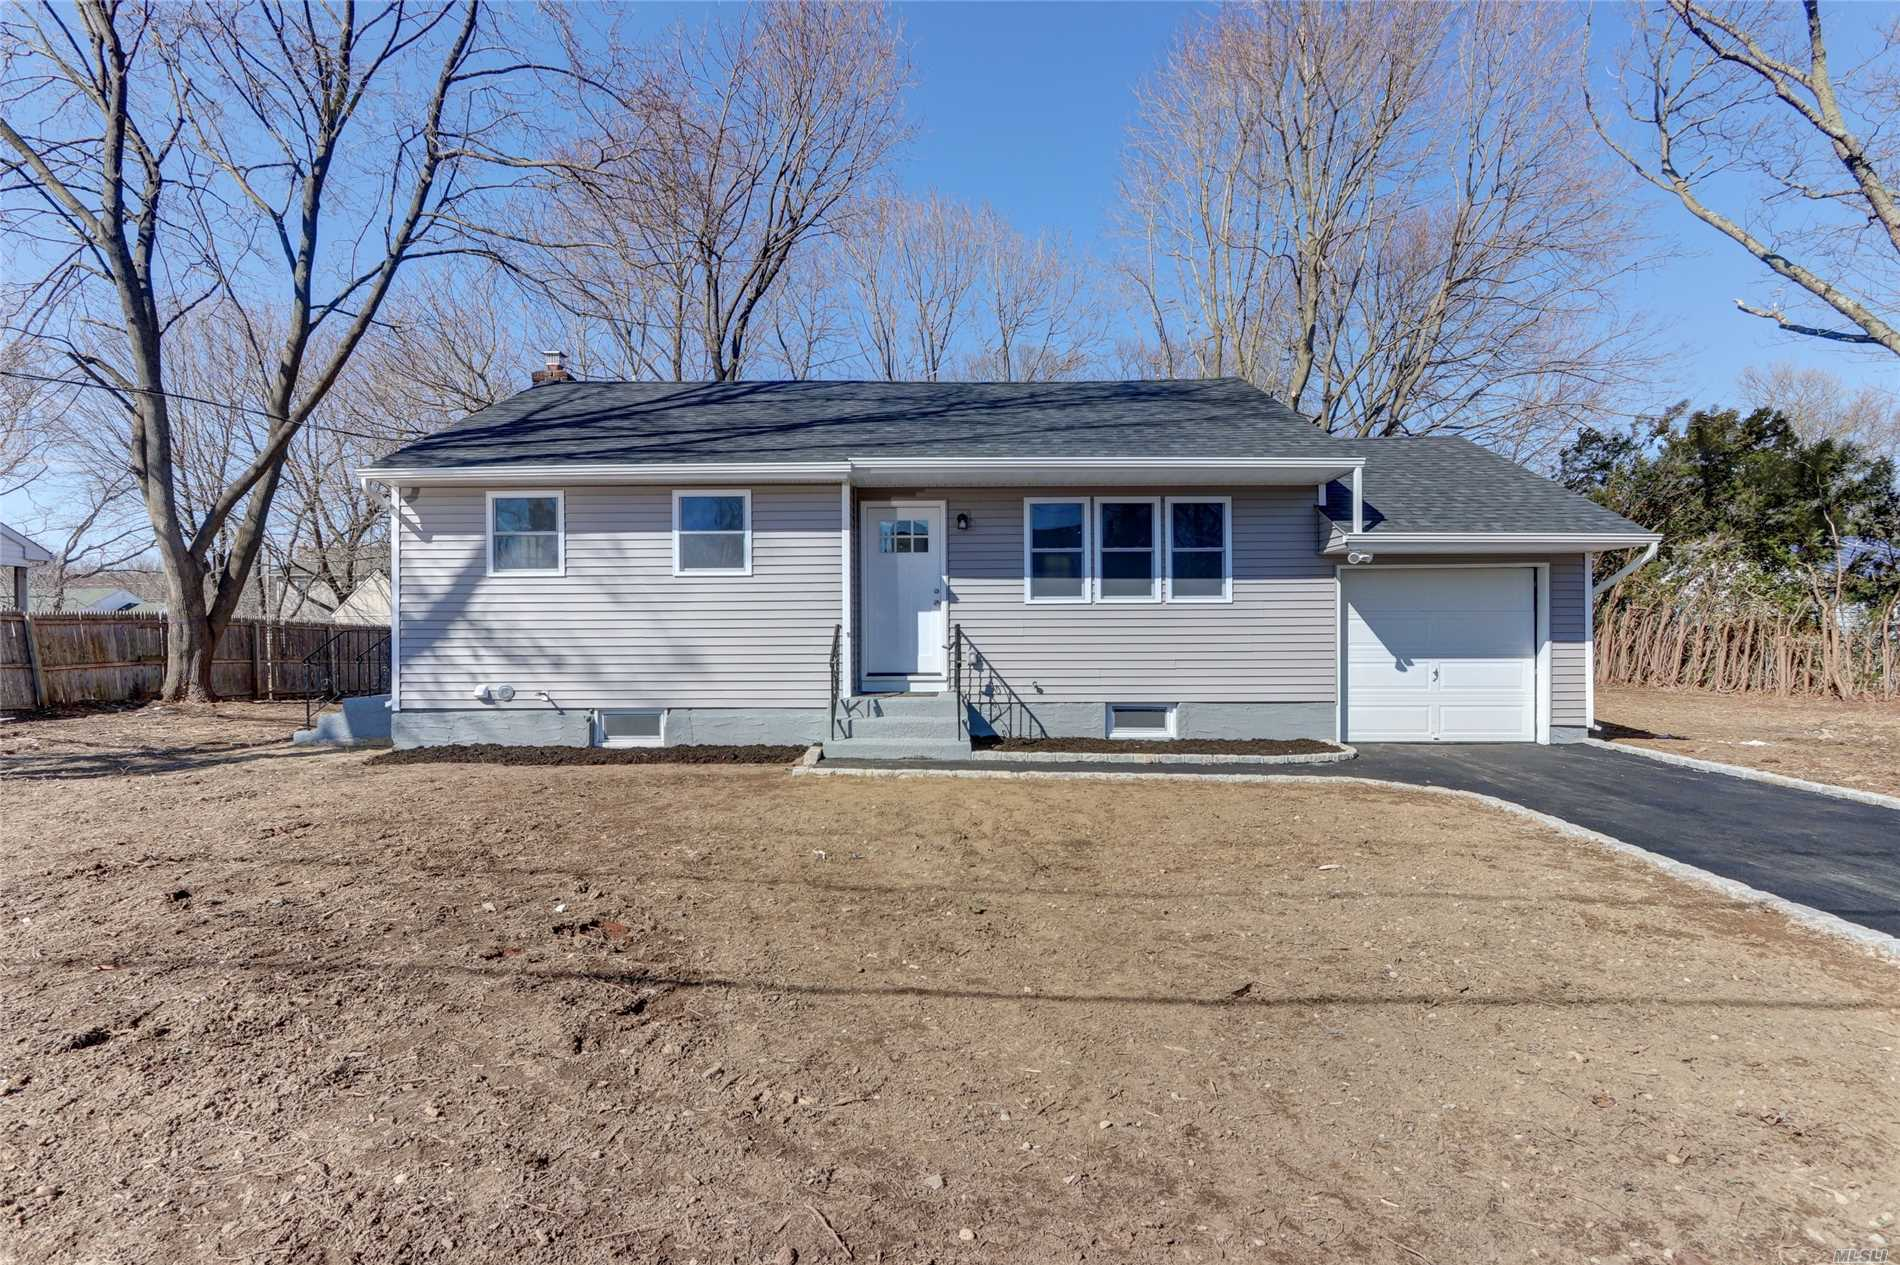 Totally Renovated Ranch - Full finished basement w/outside entrance. Everything New: Roof, siding, windows, electric, plumbing, boiler, kitchen w/granite & SS appliances. Over-sized lot w/new driveway. Worry free living, call today will not last!